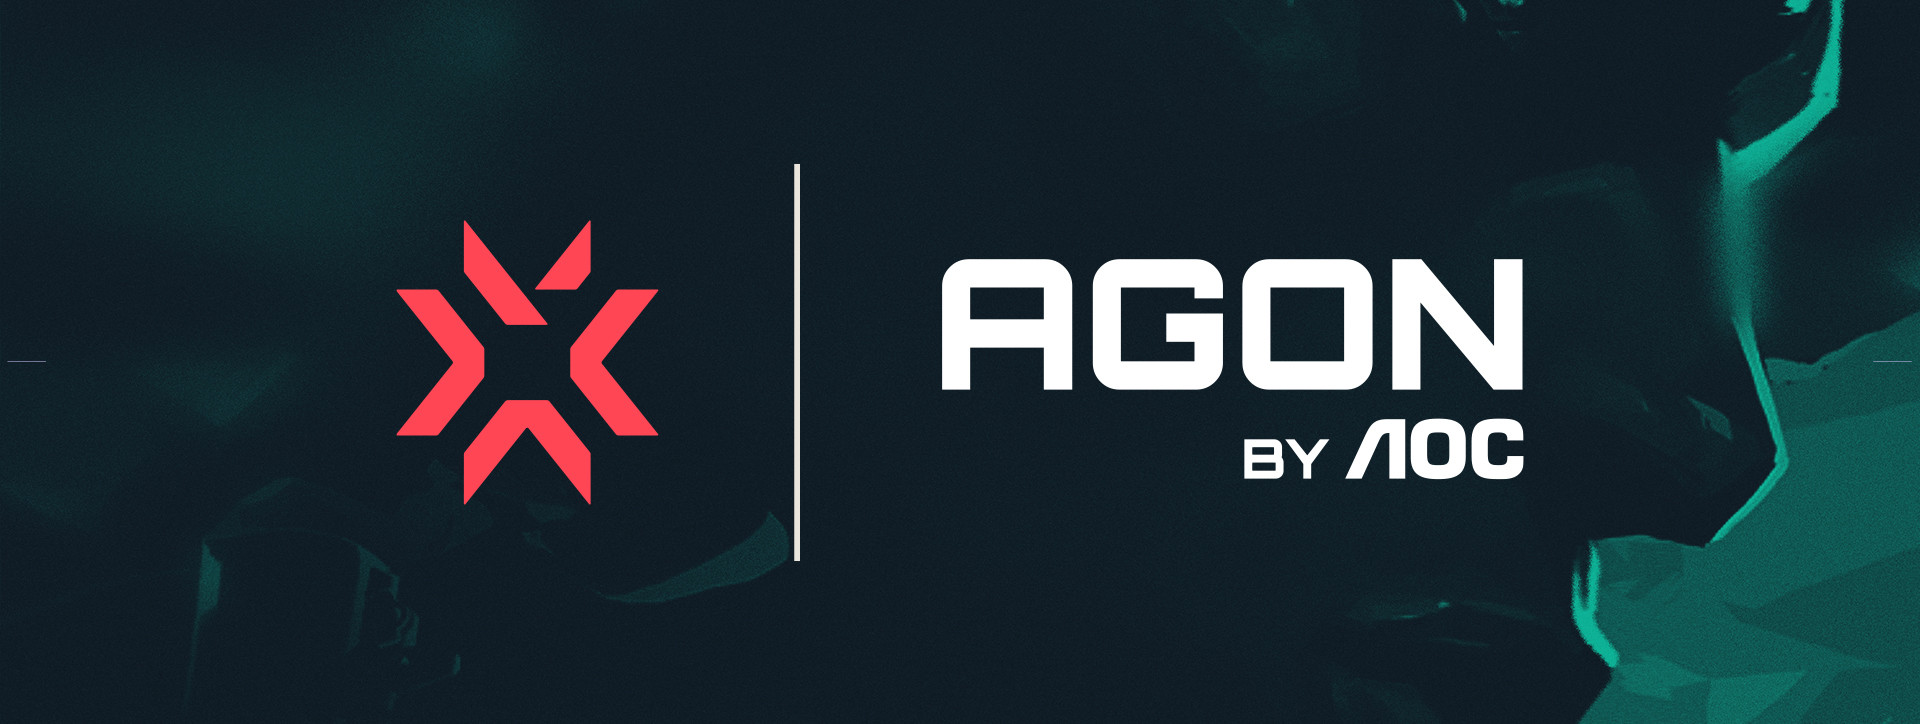 AGON by AOC to support VCT EMEA as Official Partner